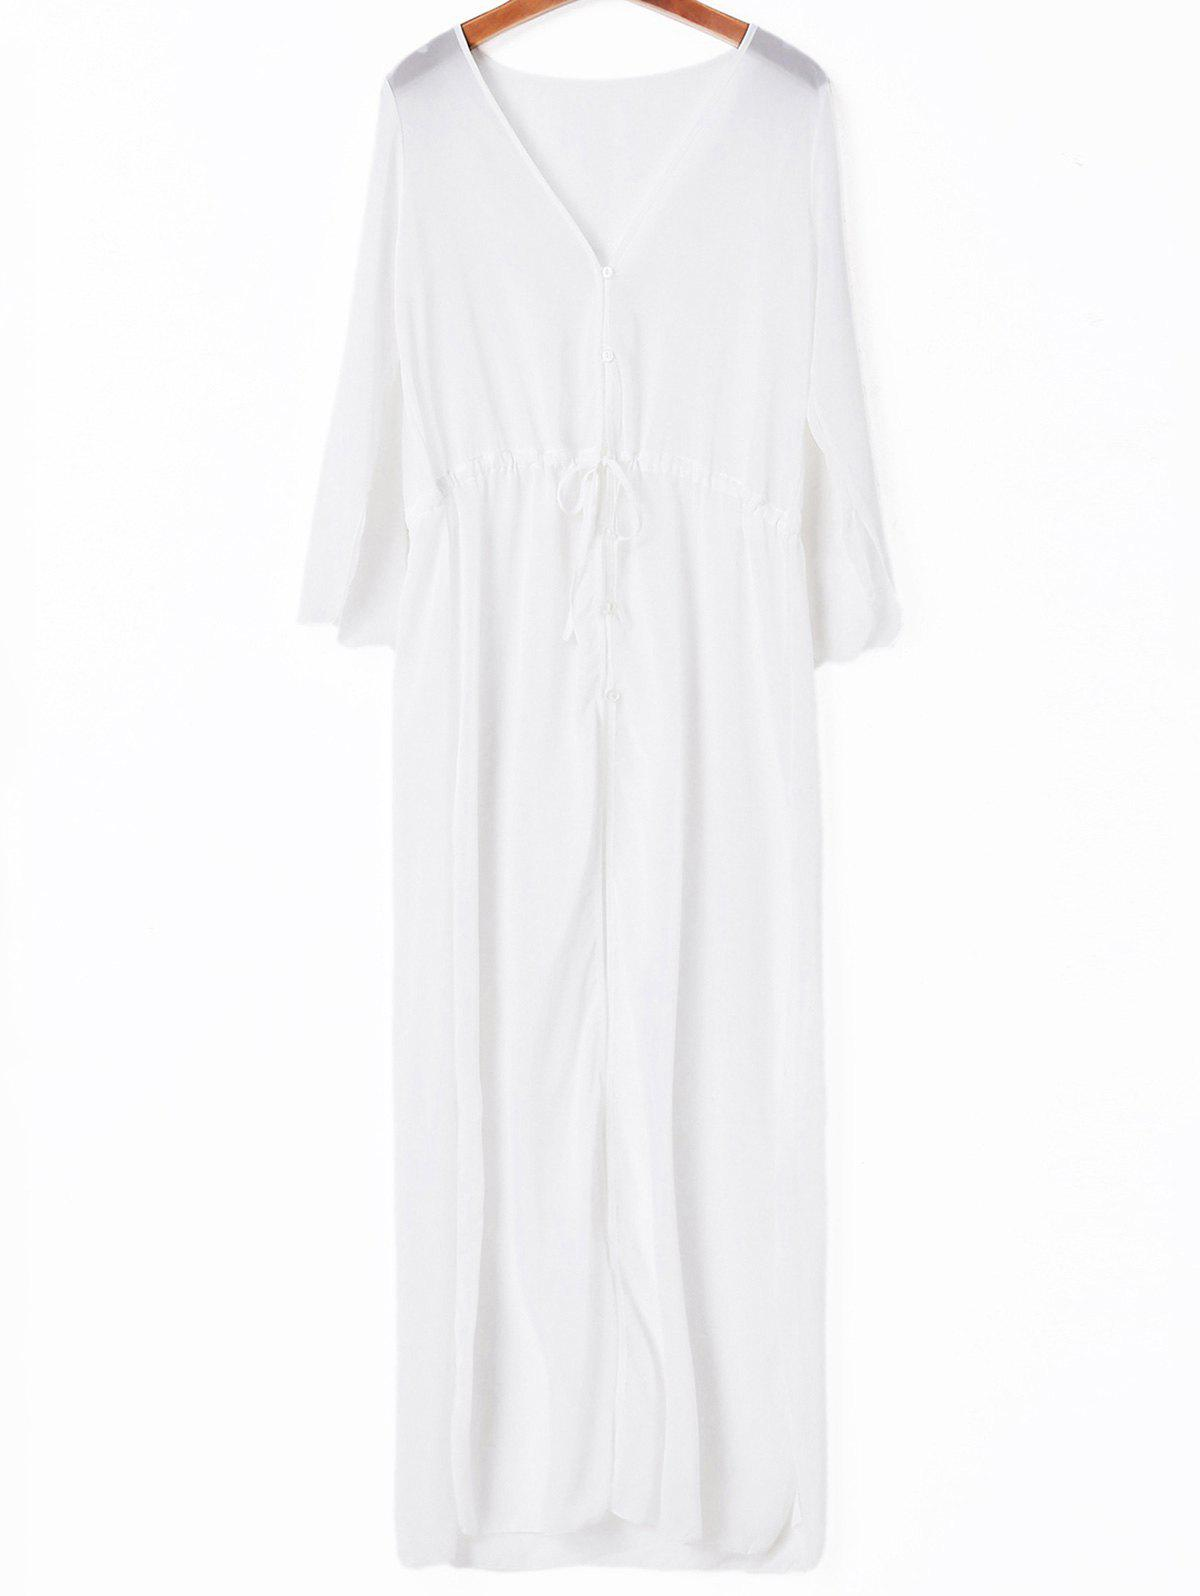 Stylish Solid Color Drawstring Women's Cover-Up - WHITE ONE SIZE(FIT SIZE XS TO M)